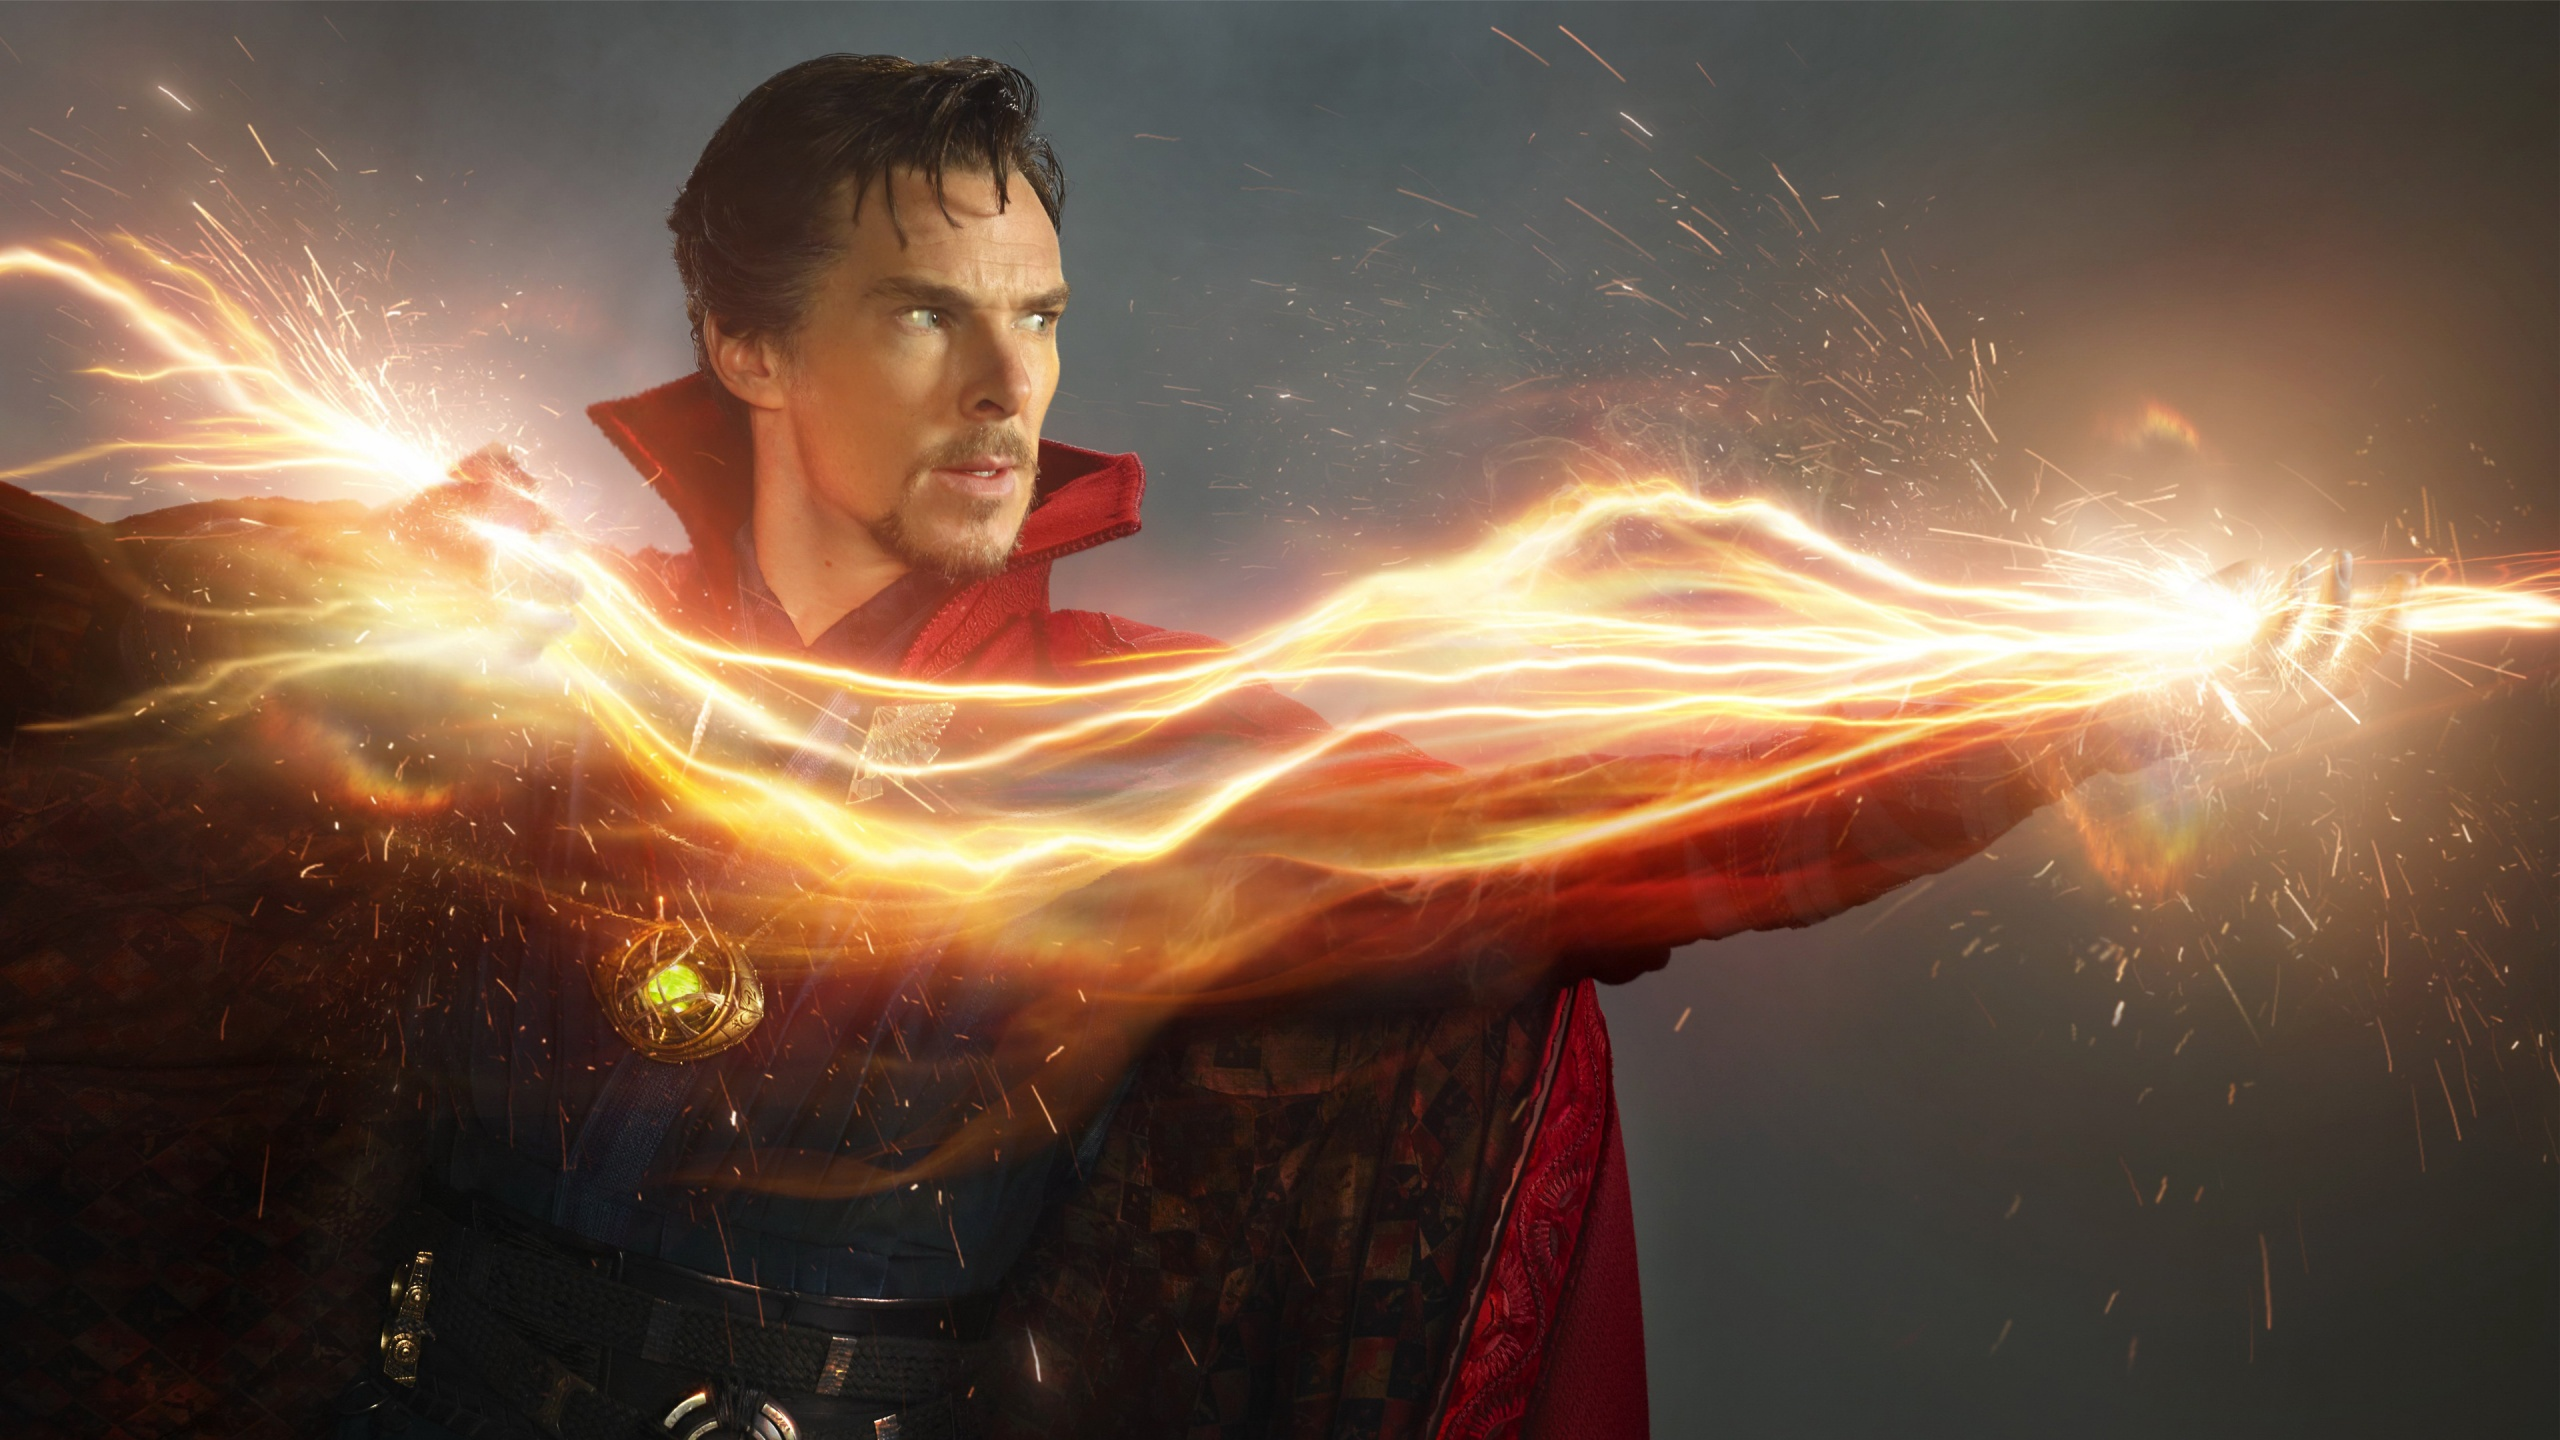 Pictures Of Doctor Strange: Doctor Strange 2016 Movies Images Photos Pictures Backgrounds